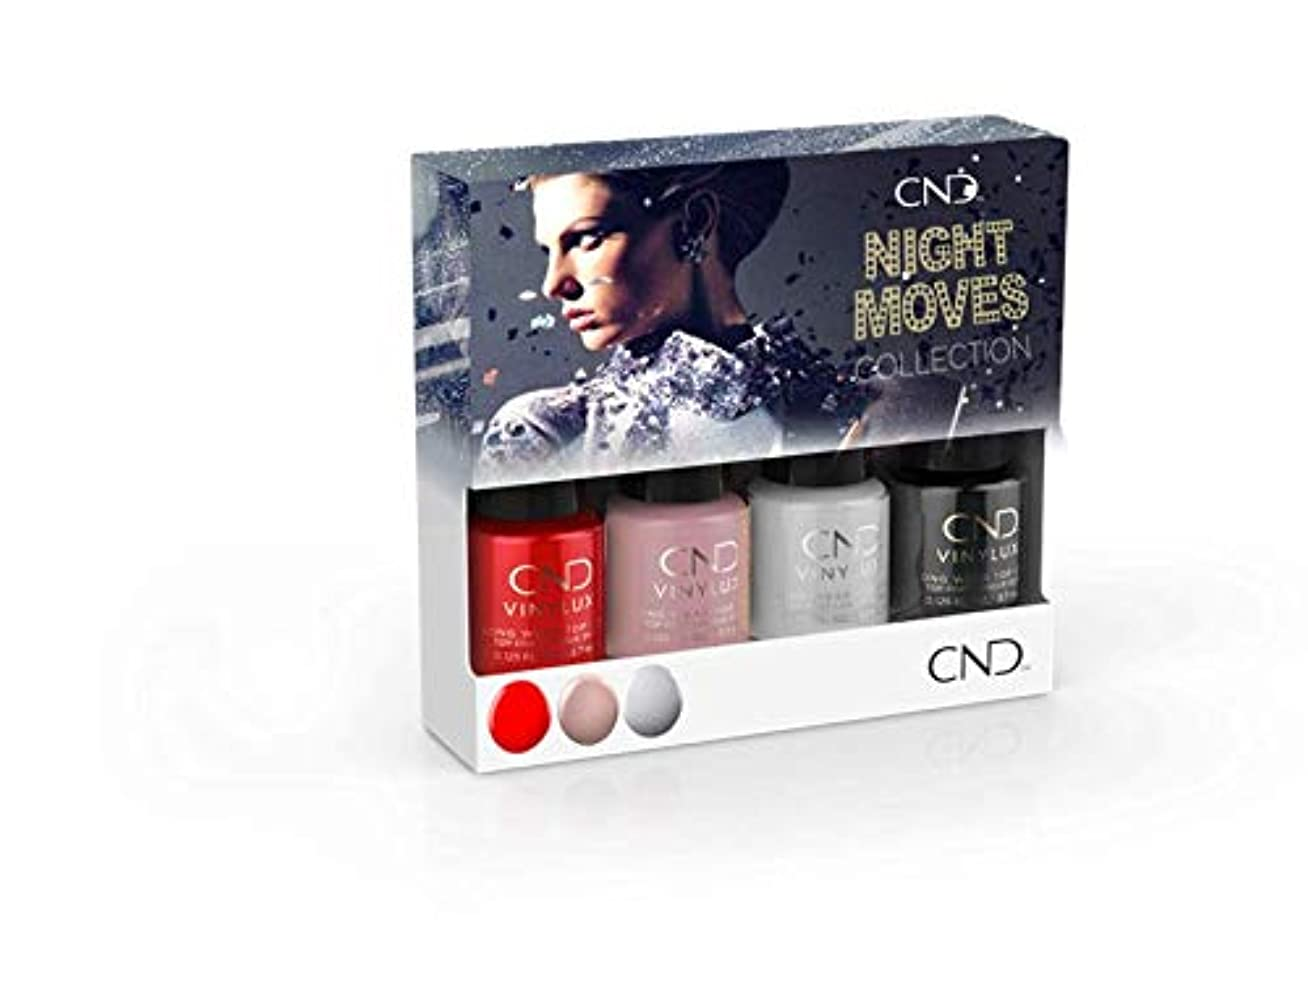 オリエント誘惑するスリーブCND Vinylux - Night Moves The Collection - Mini 4pk - 3.7 mL / 0.125 oz